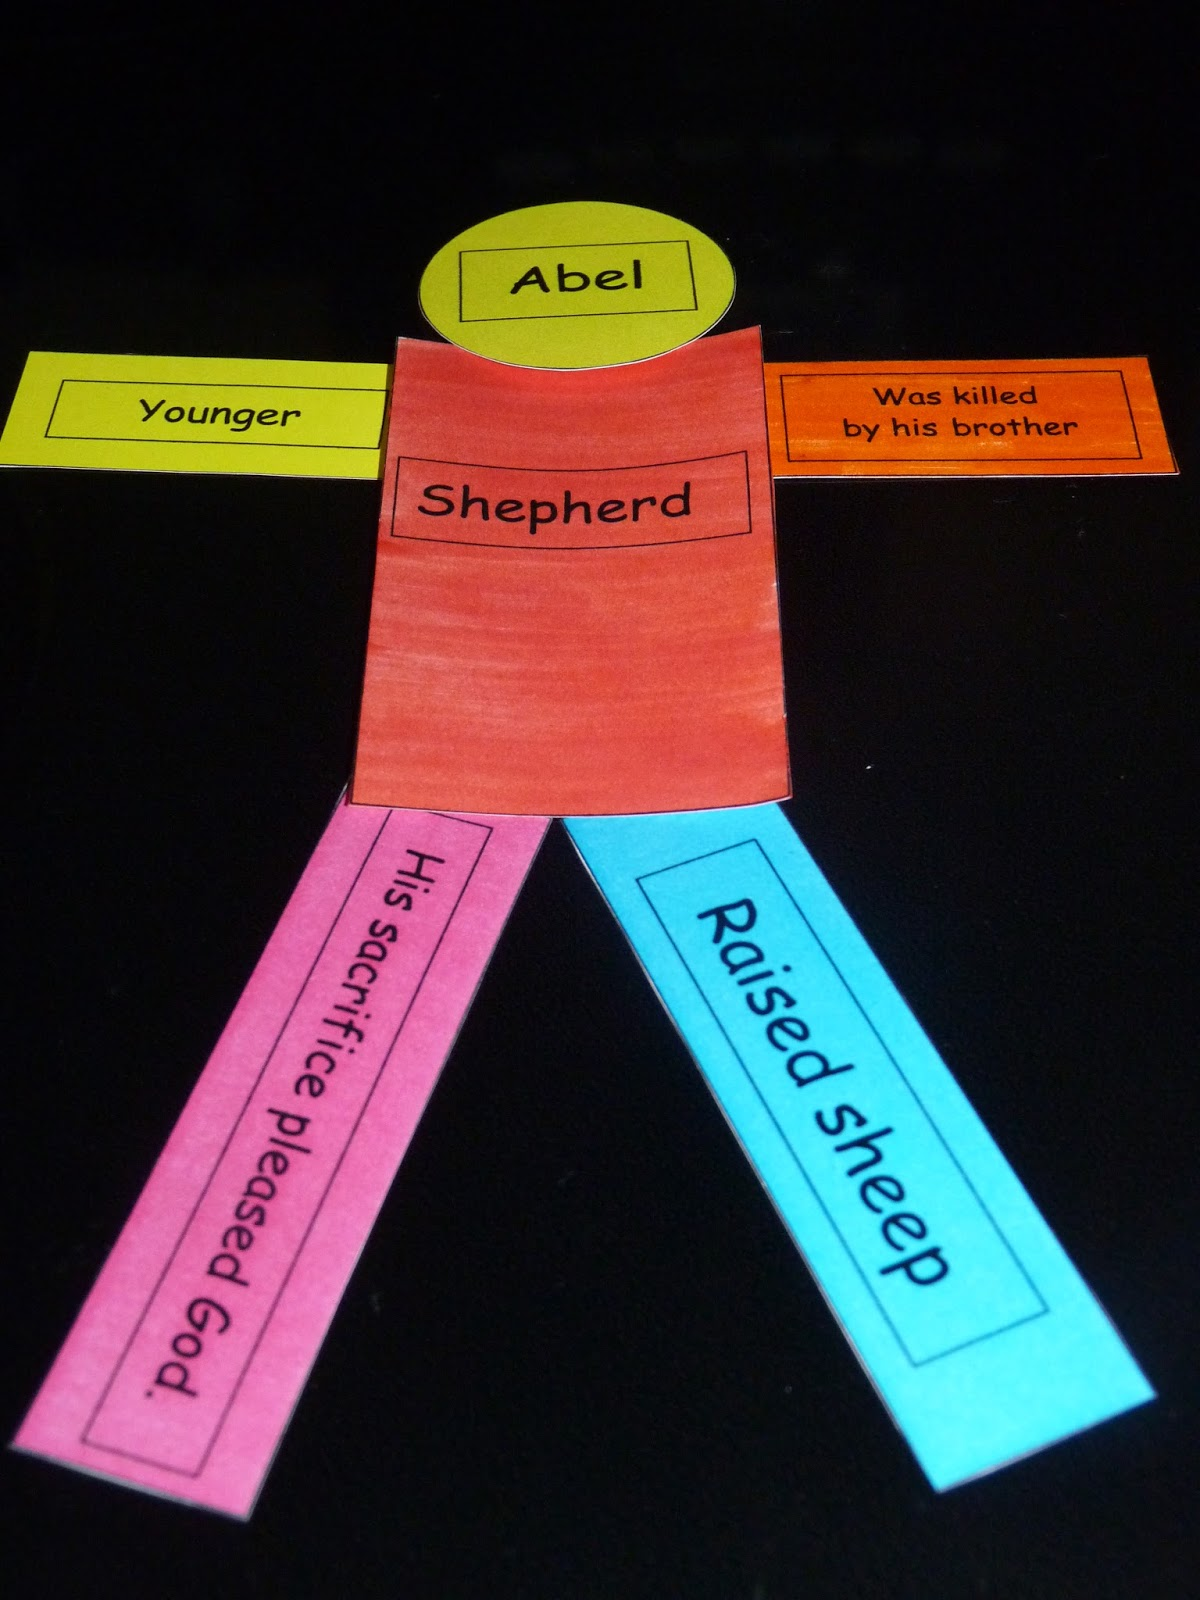 Cain and abel craft ideas -  Do To Help Us Remember What Jobs They Each Had Is To Use The Word Crops With Cain That Is A Little Bit Helpful As They Both Begin With The K Sound